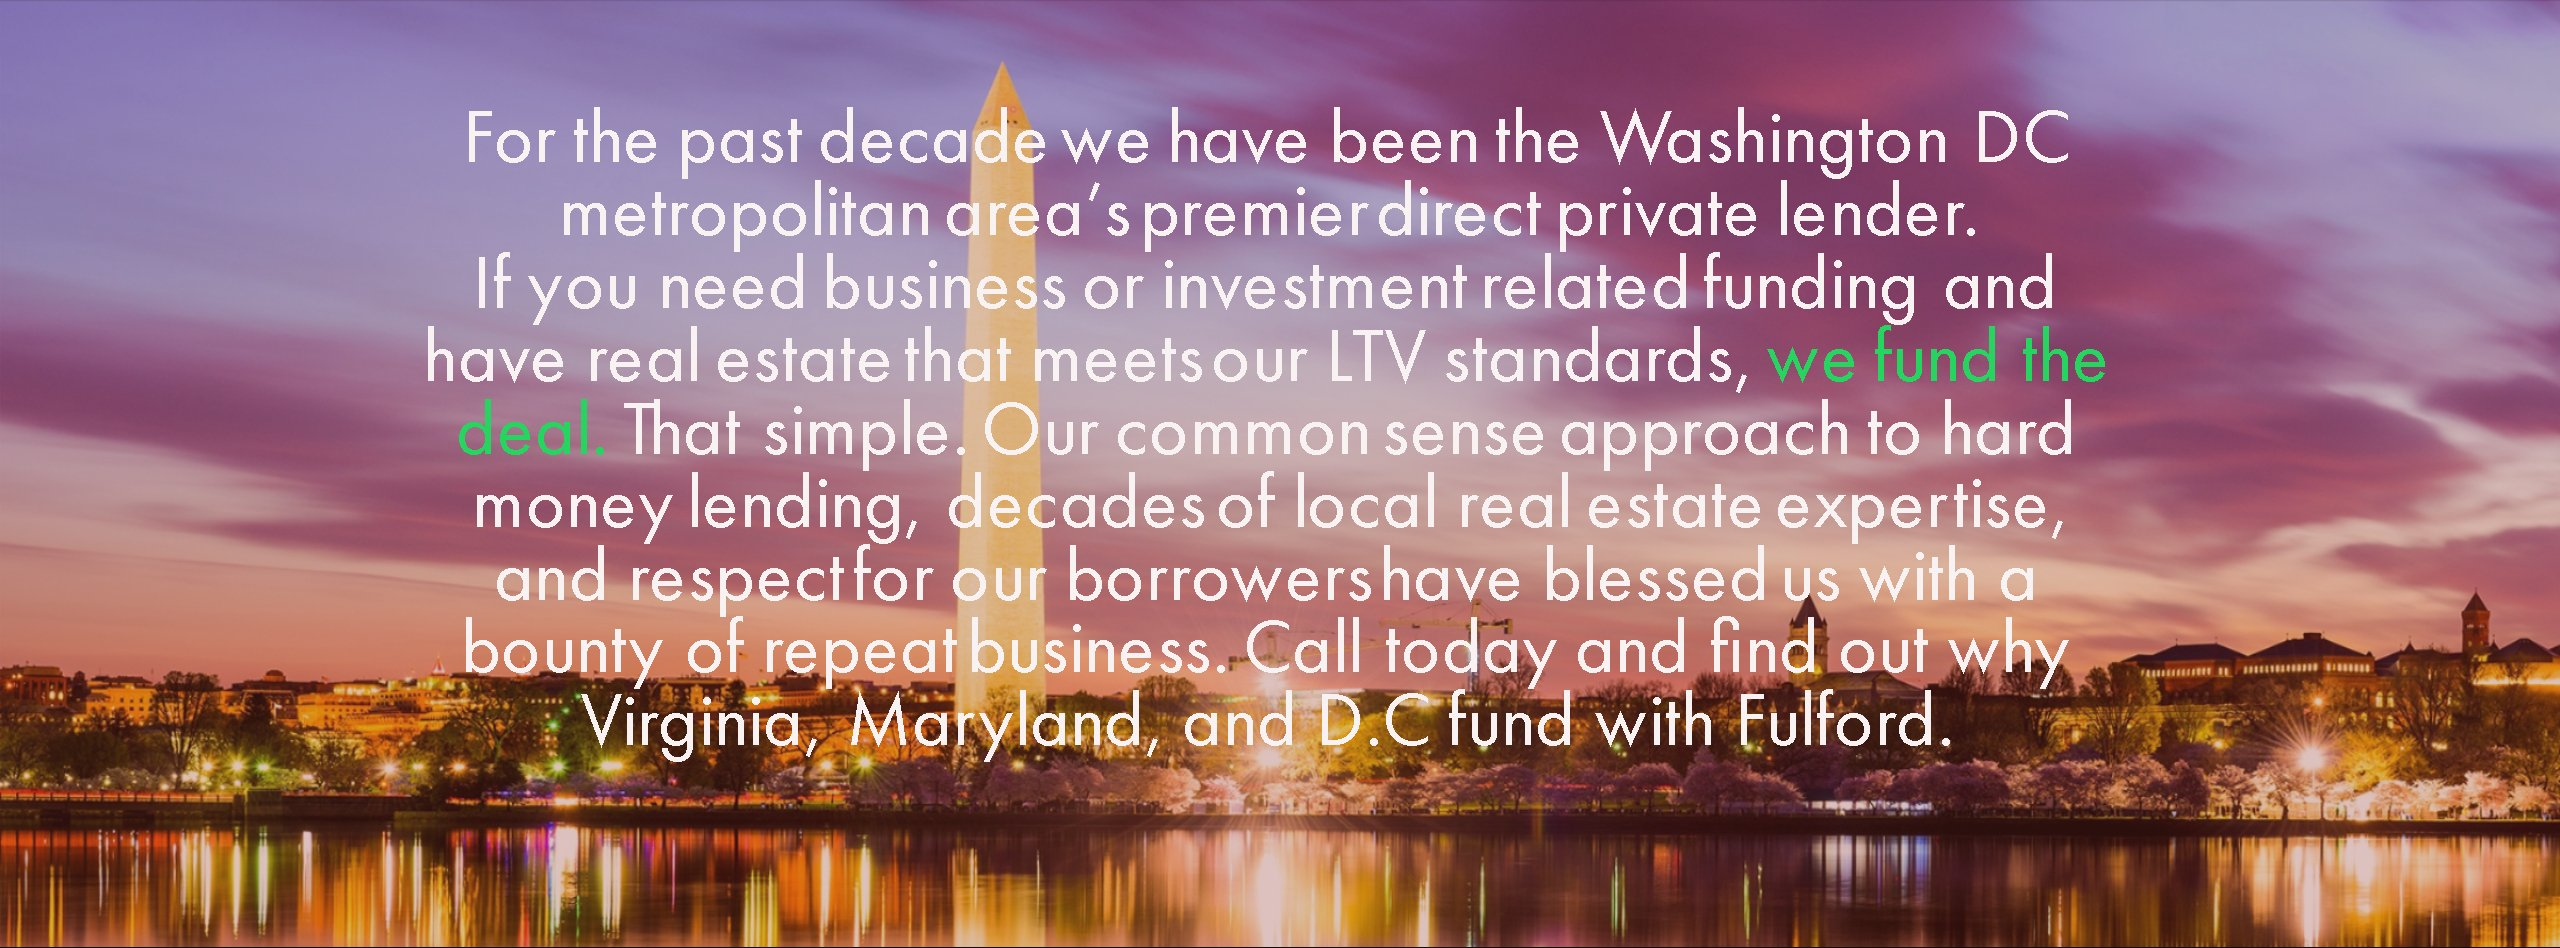 Hard Money D.C, MD, and VA Private Lender Banner